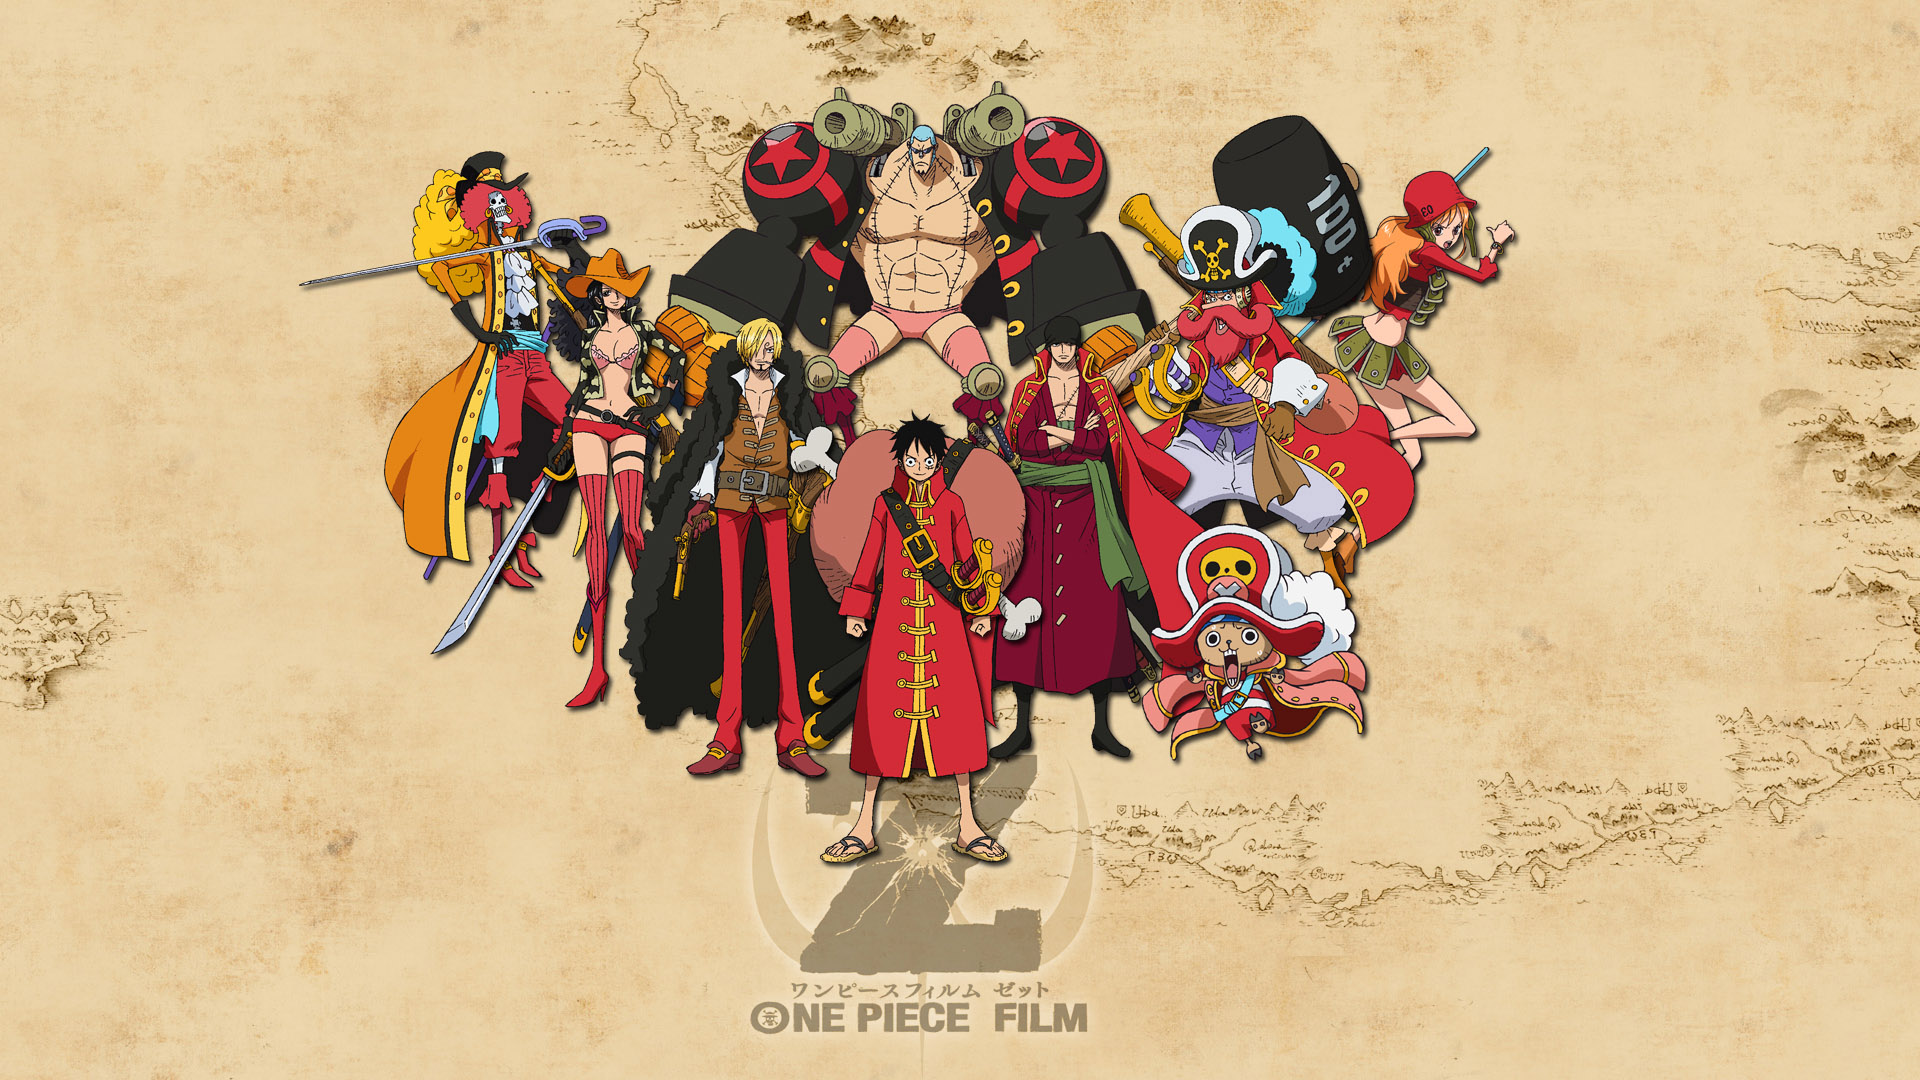 One Piece Z Wallpaper HD wallpapers55com   Best Wallpapers for PCs 1920x1080